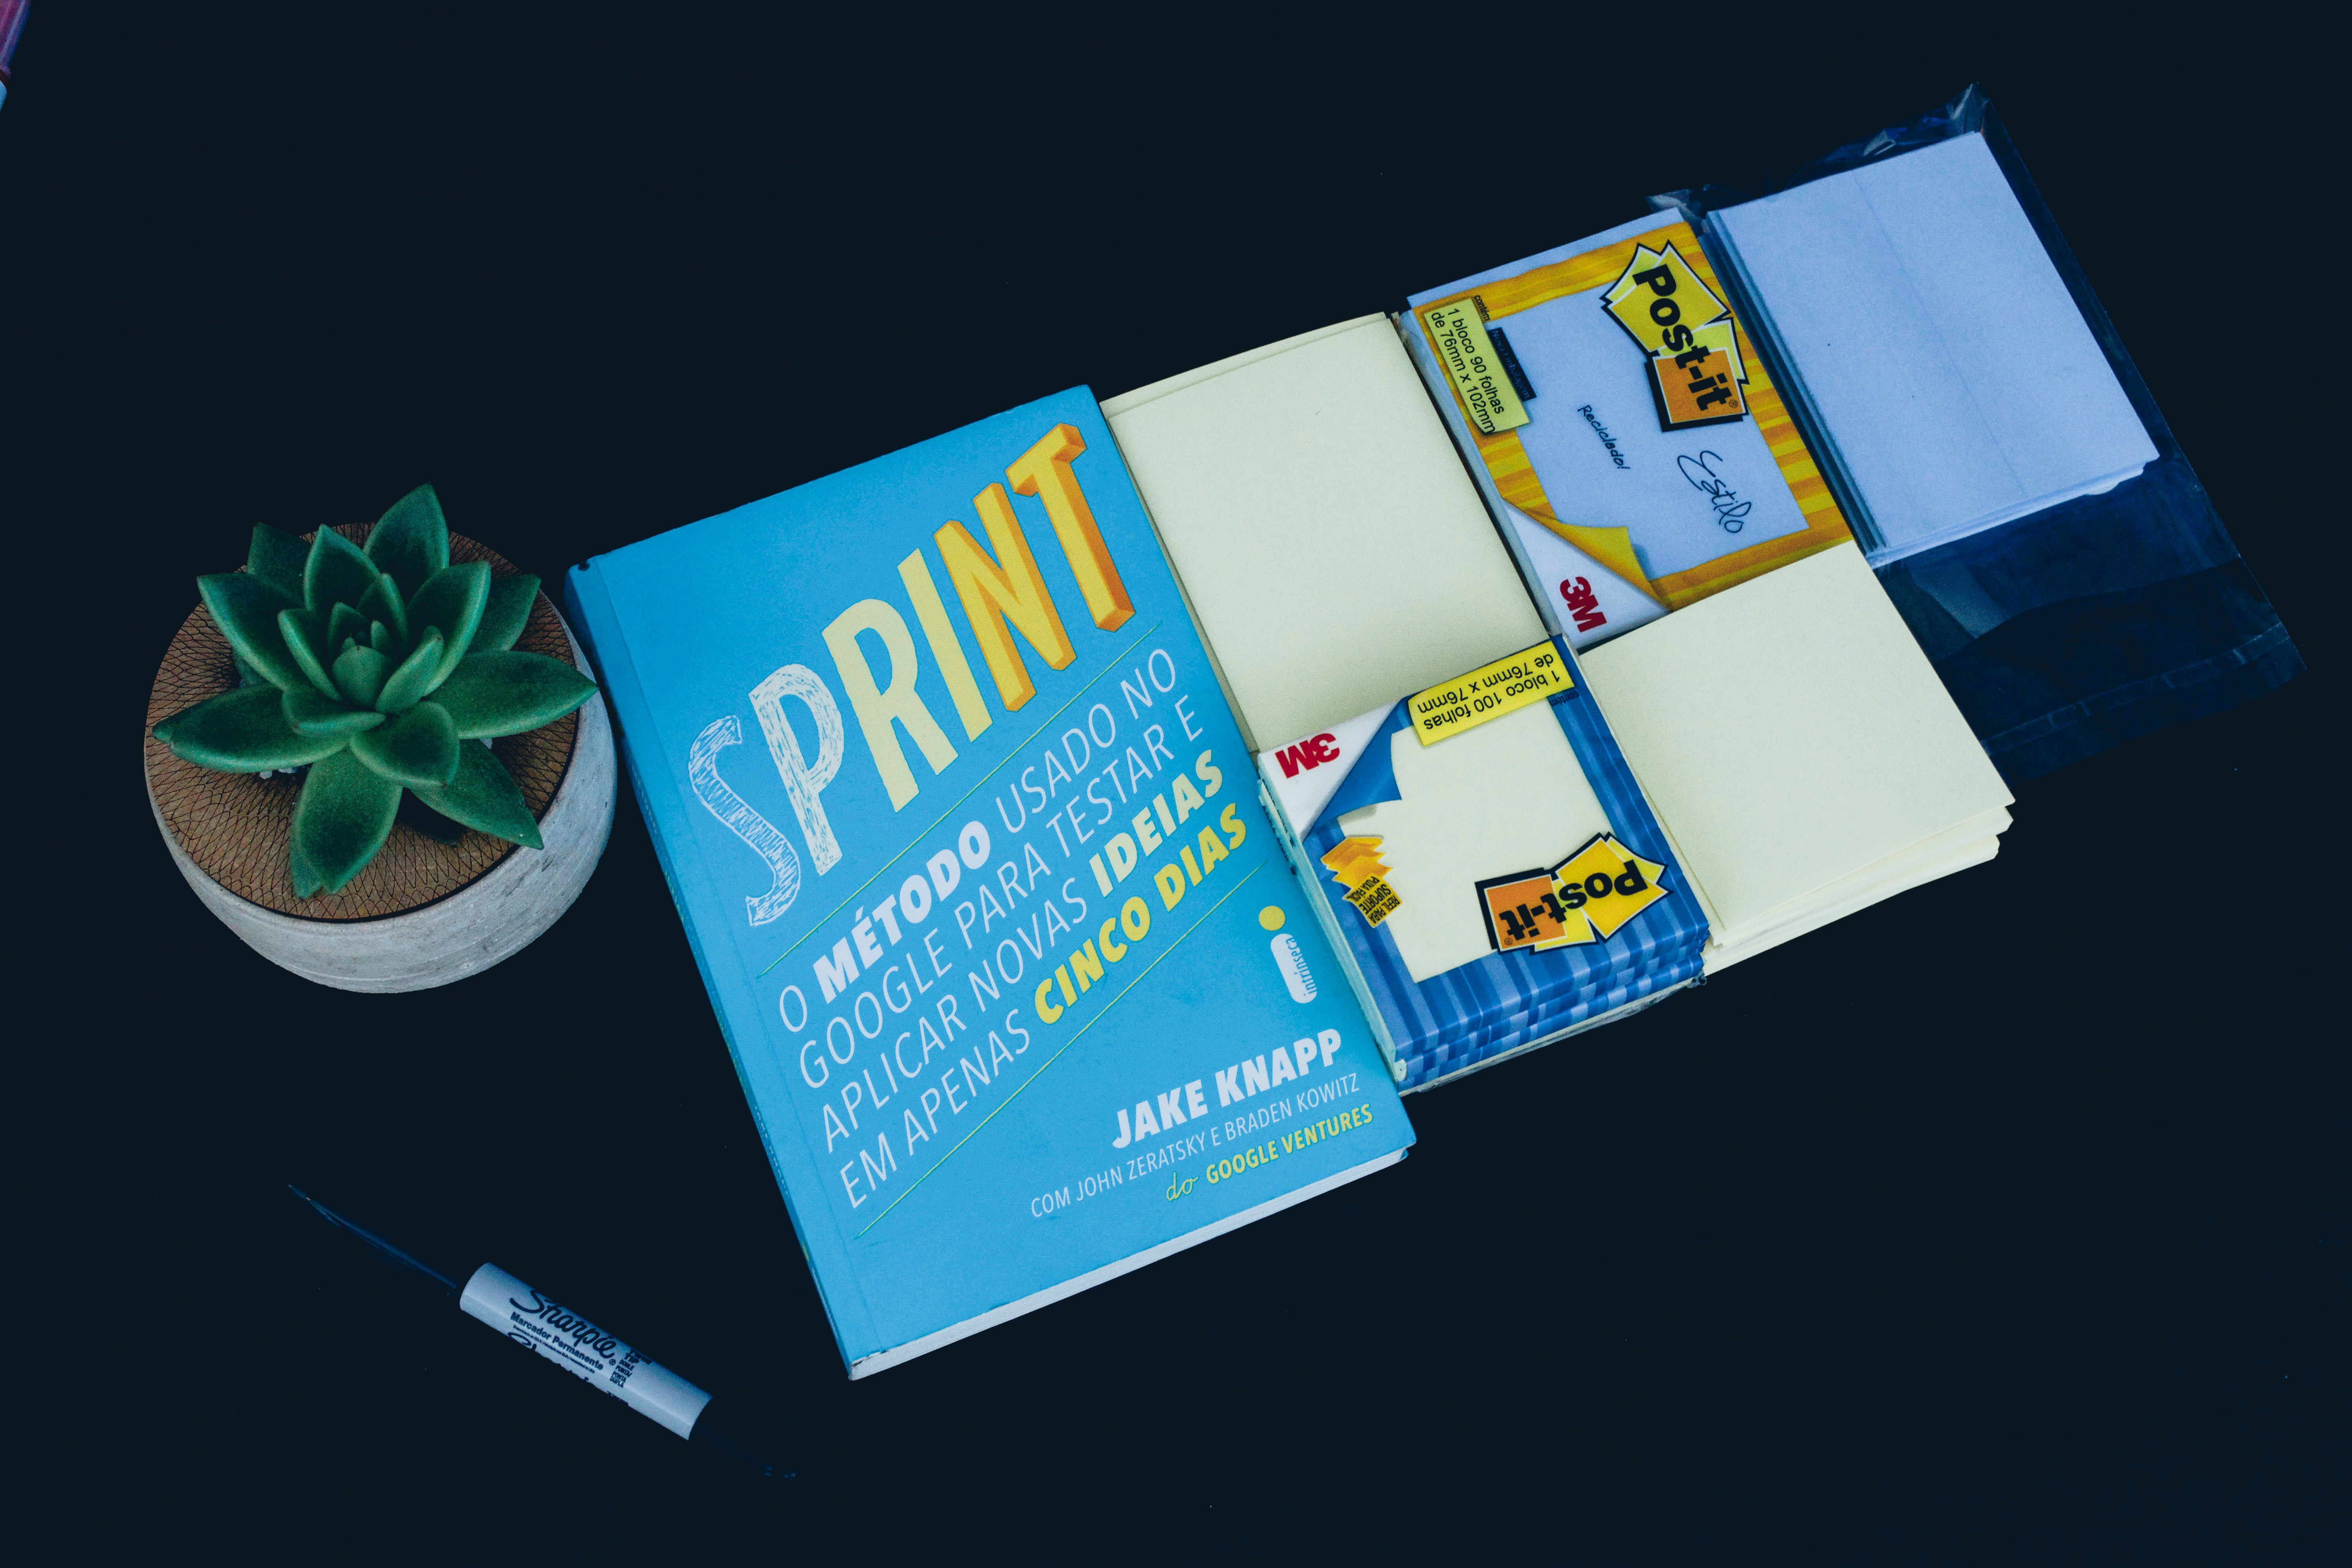 Sprint book and black marker